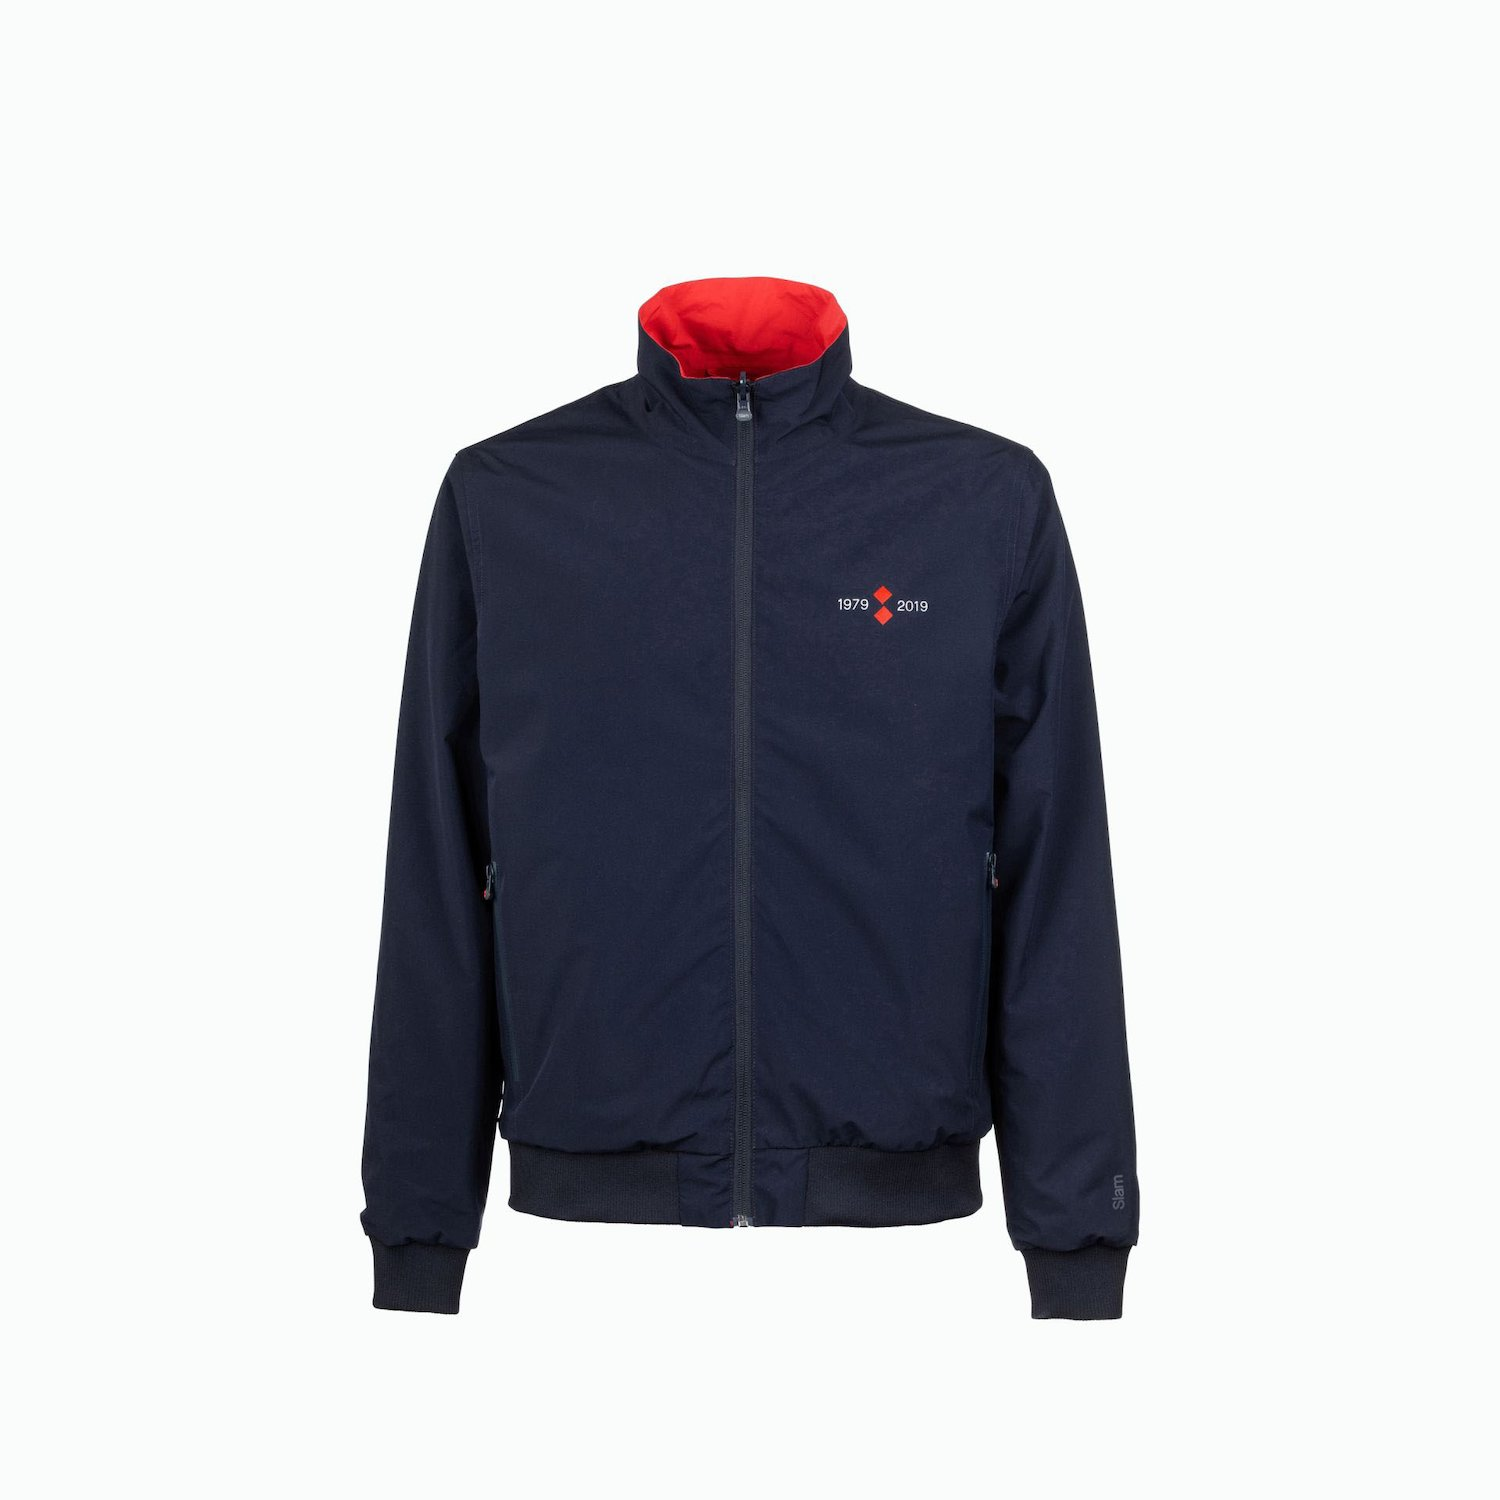 40th Short Jacket - Navy